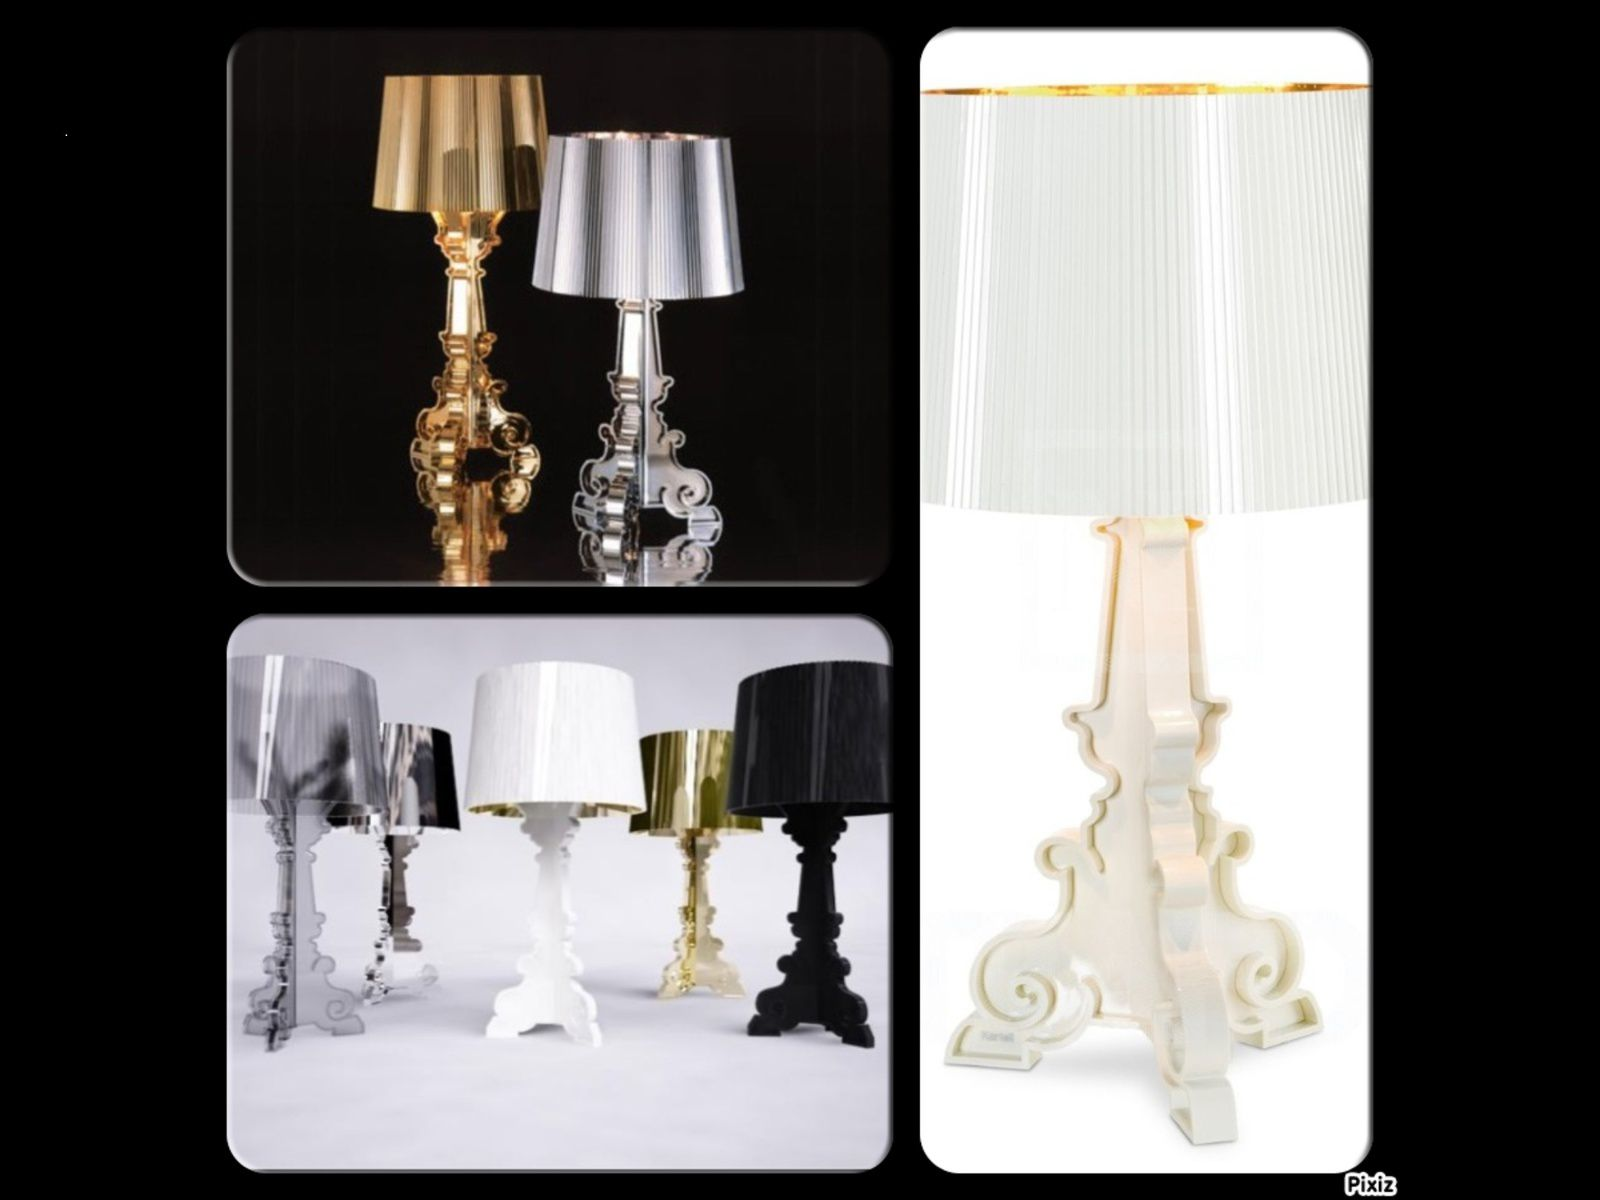 lampe bourgie de kartell la folie. Black Bedroom Furniture Sets. Home Design Ideas